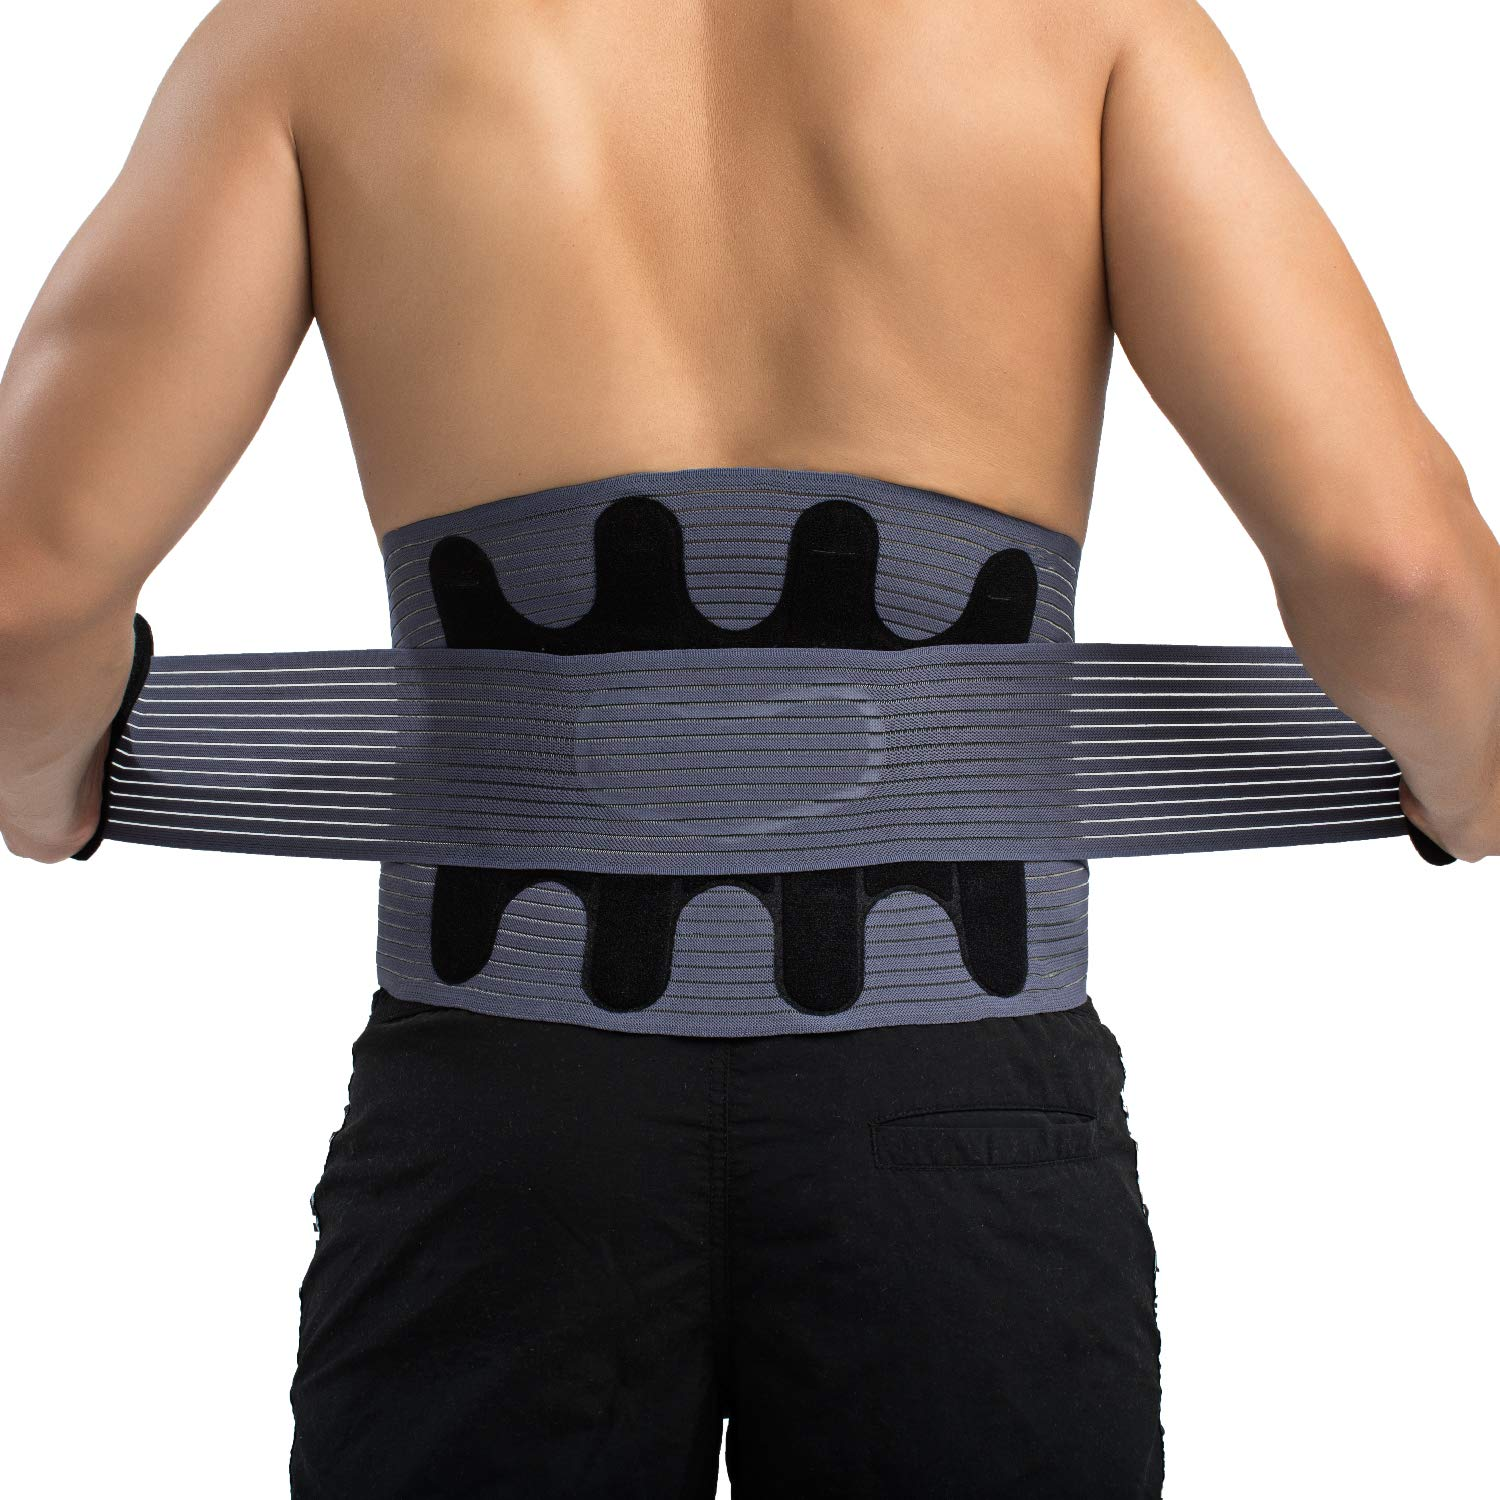 Athlete Elite Back Support Brace and Posture Corrector (Neoprene) Relieve Sciatica, Lower Lumbar, Joint, Herniated Disc Pain | Adjustable, Breathable Heat Compression | Men, Women [XL ]